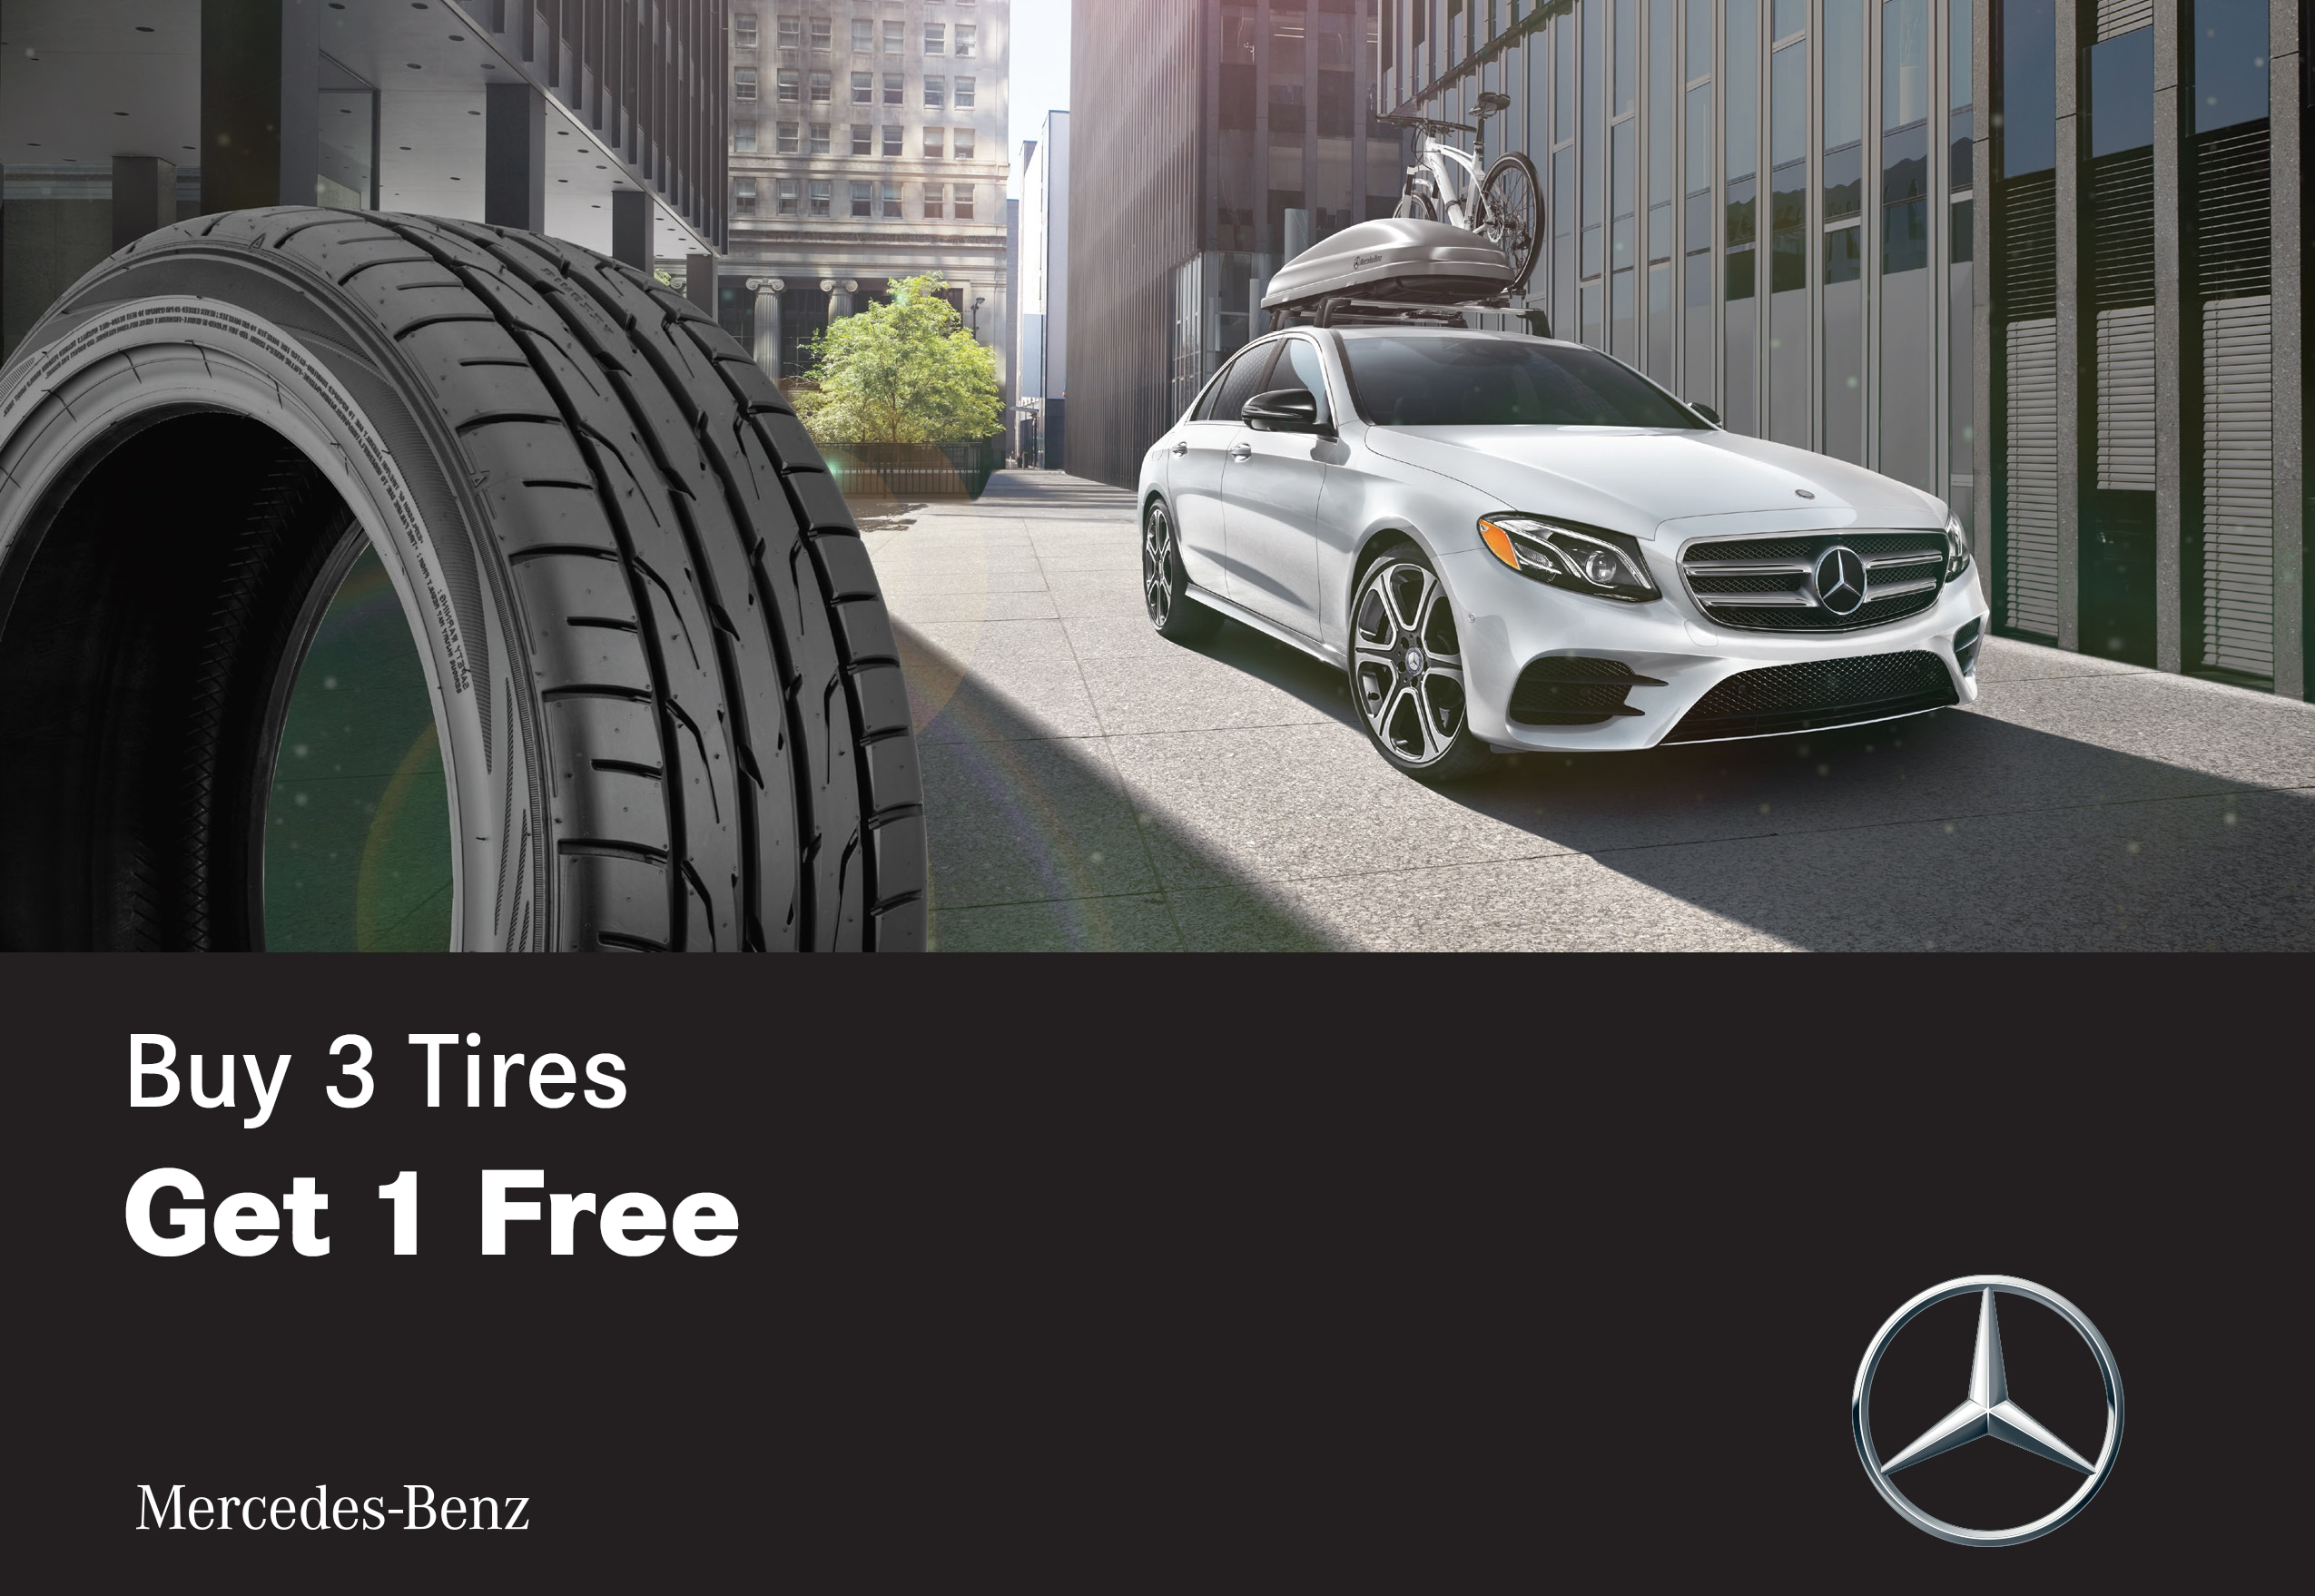 Michelin Tires in Tampa FL   Mercedes Benz of Tampa Tire Deals Michelin Tire Deals in Tampa   Michelin Tires Tampa   Mercedes Tire Specials